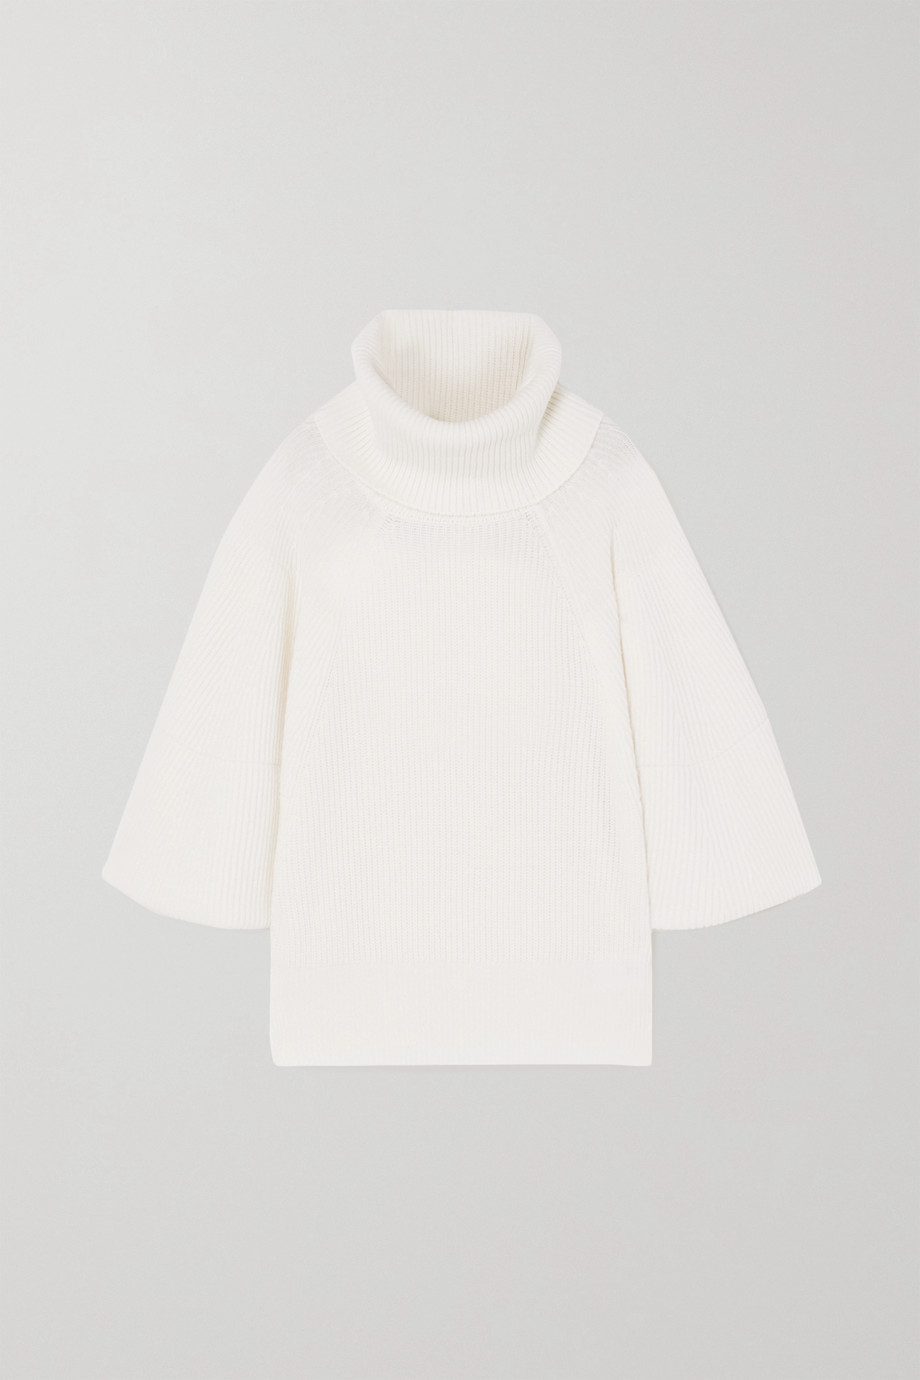 Givenchy Ribbed cashmere turtleneck sweater